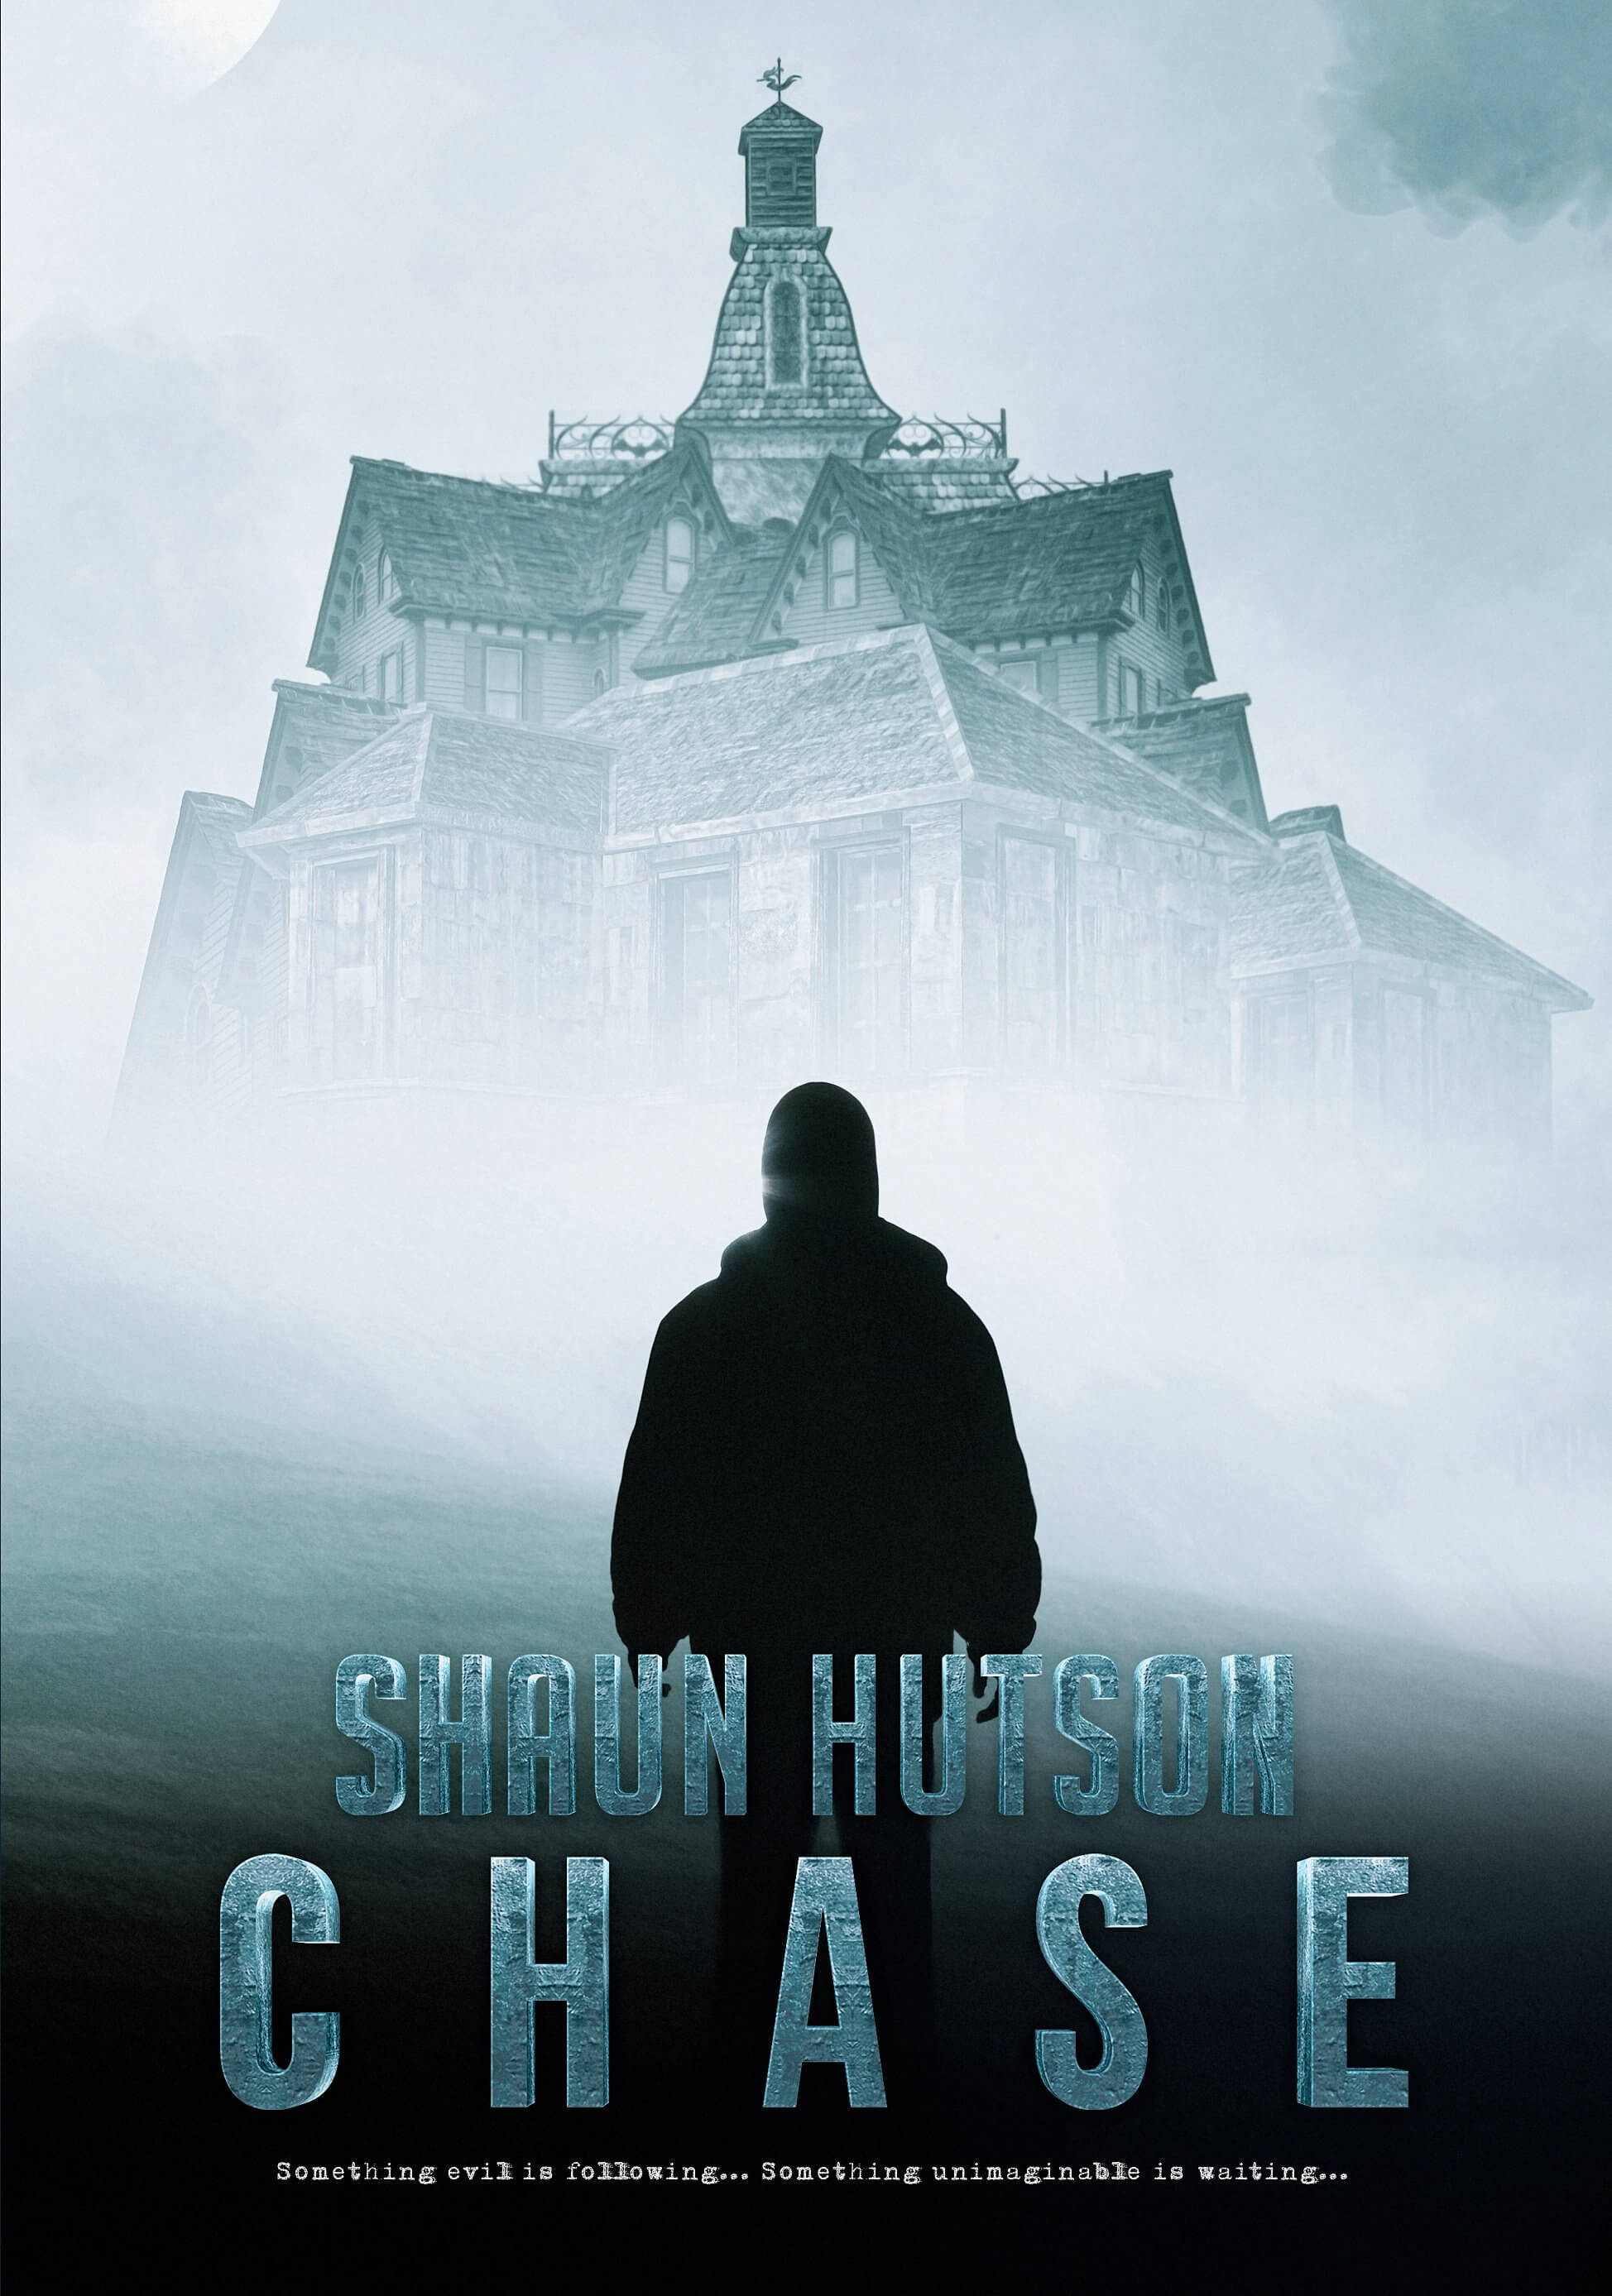 shaun hutson chase 1 - Exclusive Interview: Bestselling Horror Author Shaun Hutson Talks Us Through His Career